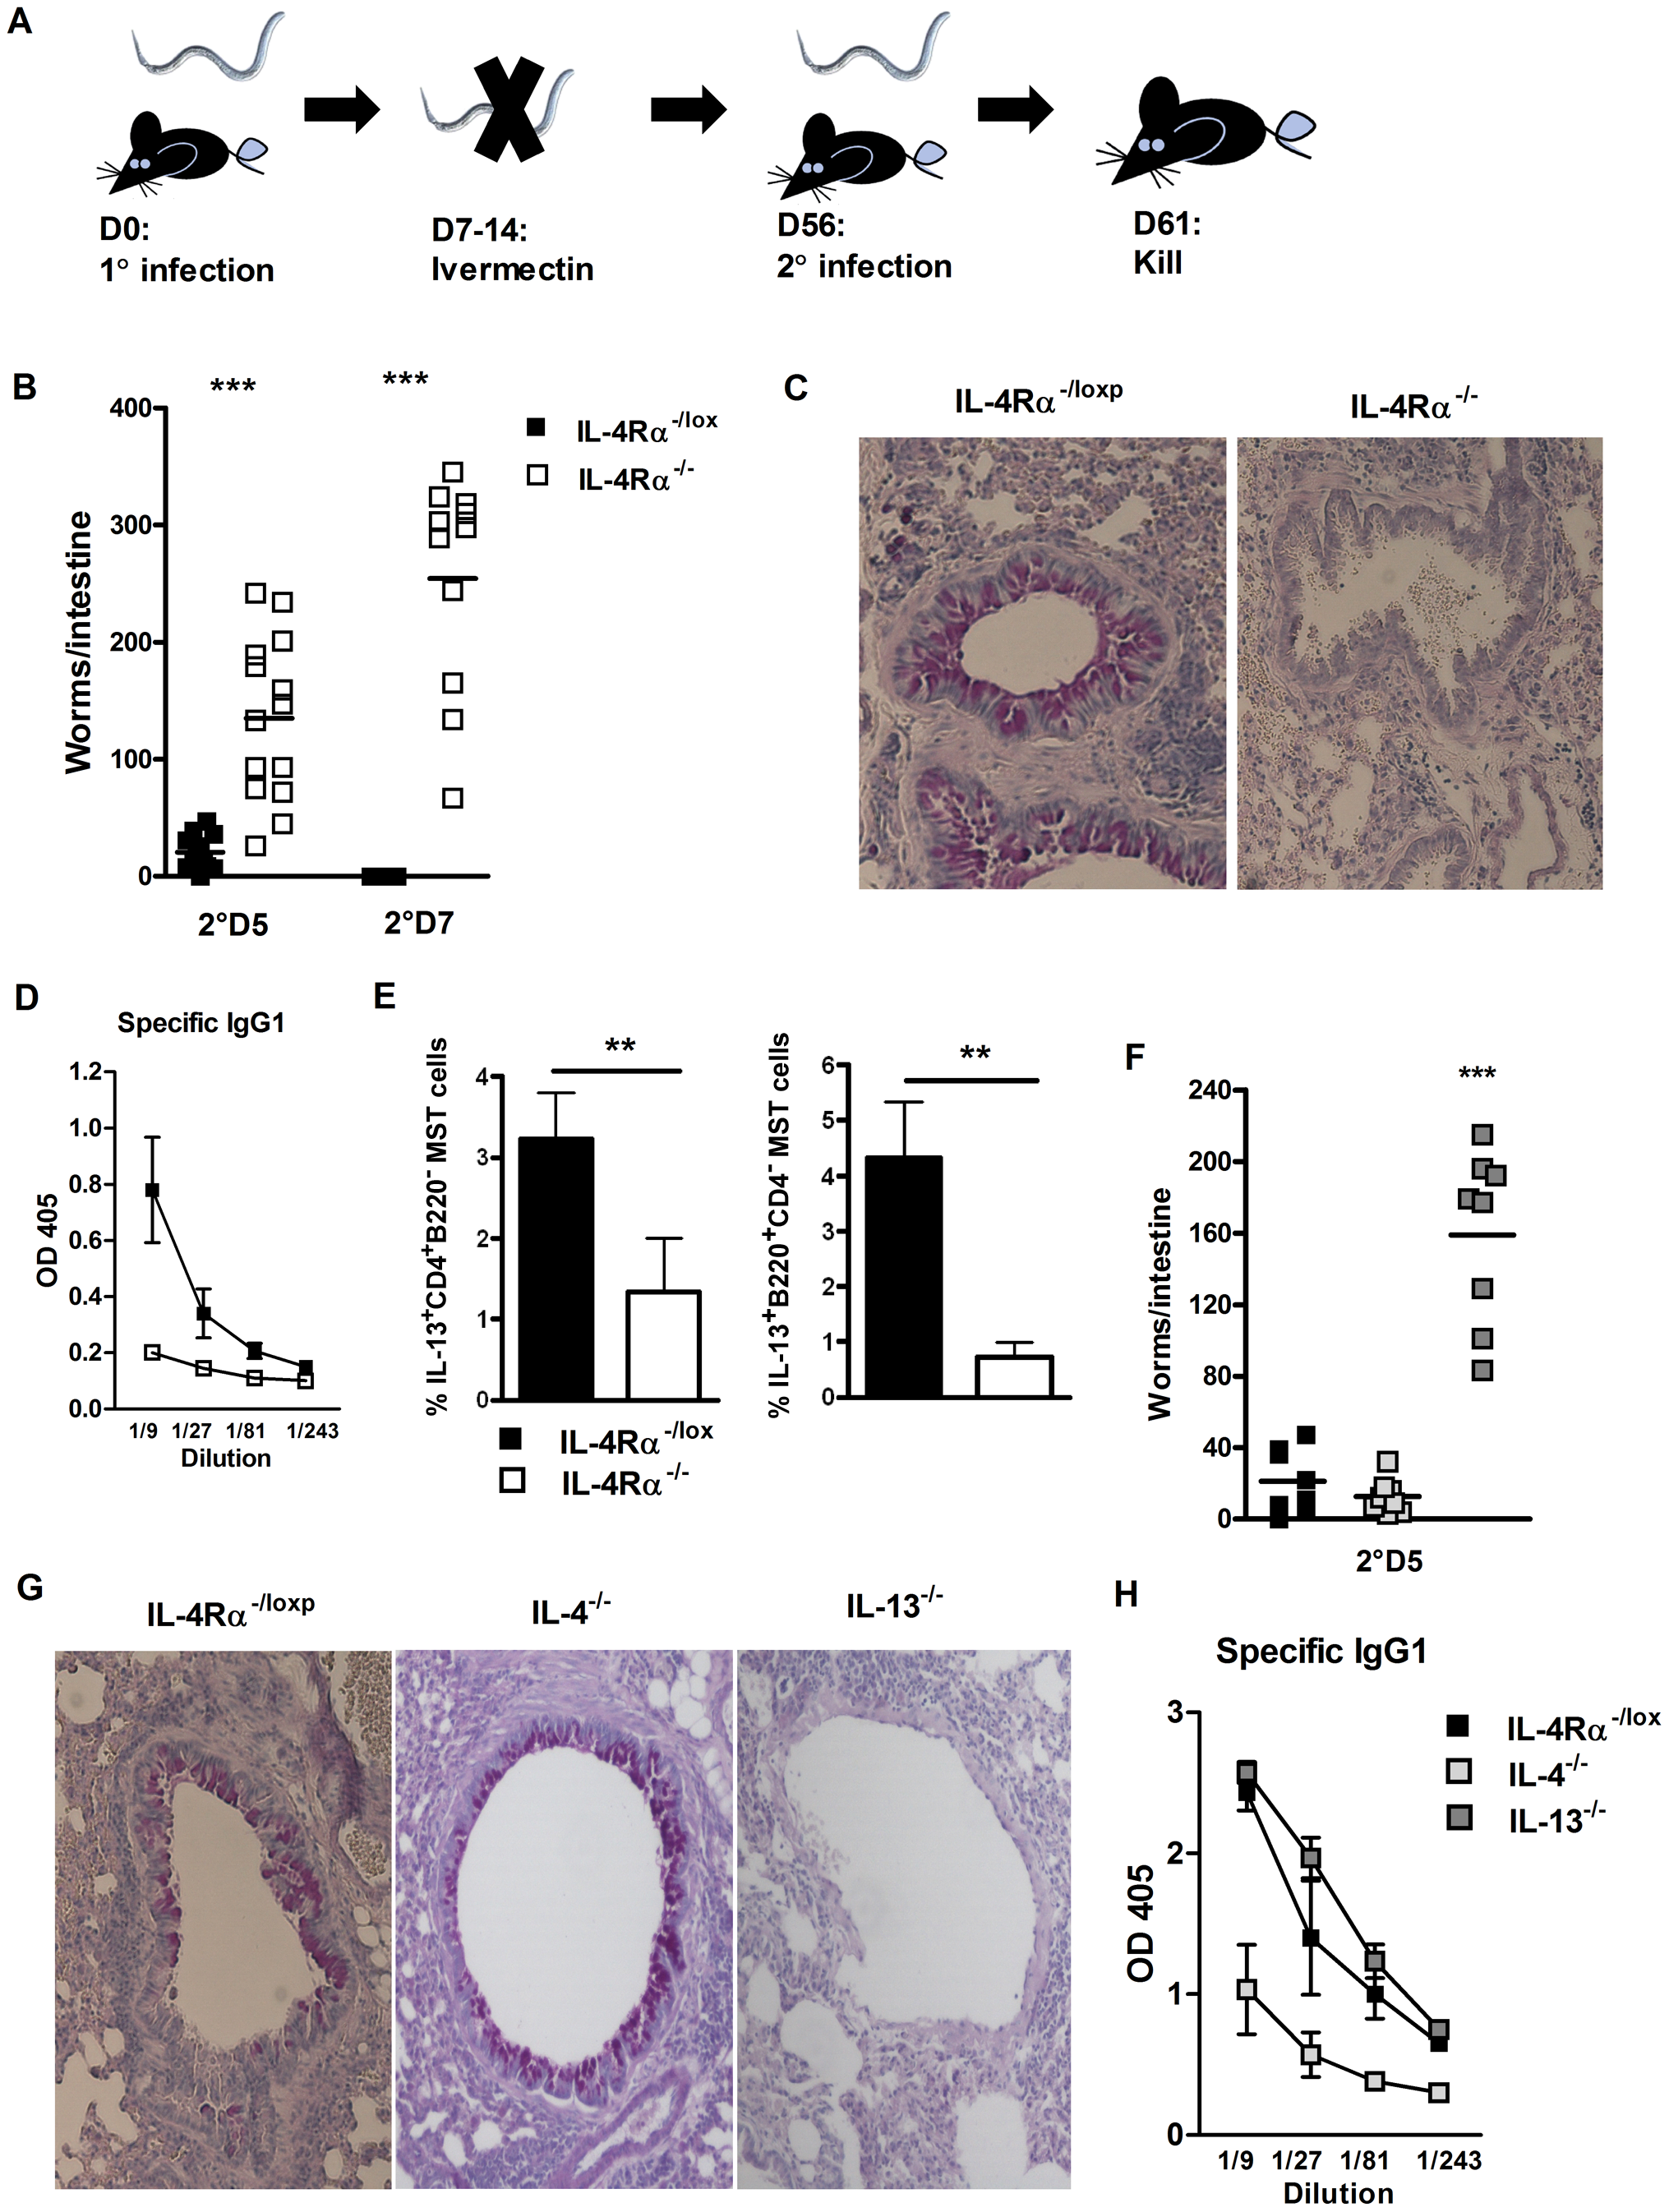 Protective immunity to <i>N. brasiliensis</i> re-infection is IL-13 and IL-4Rα dependent.